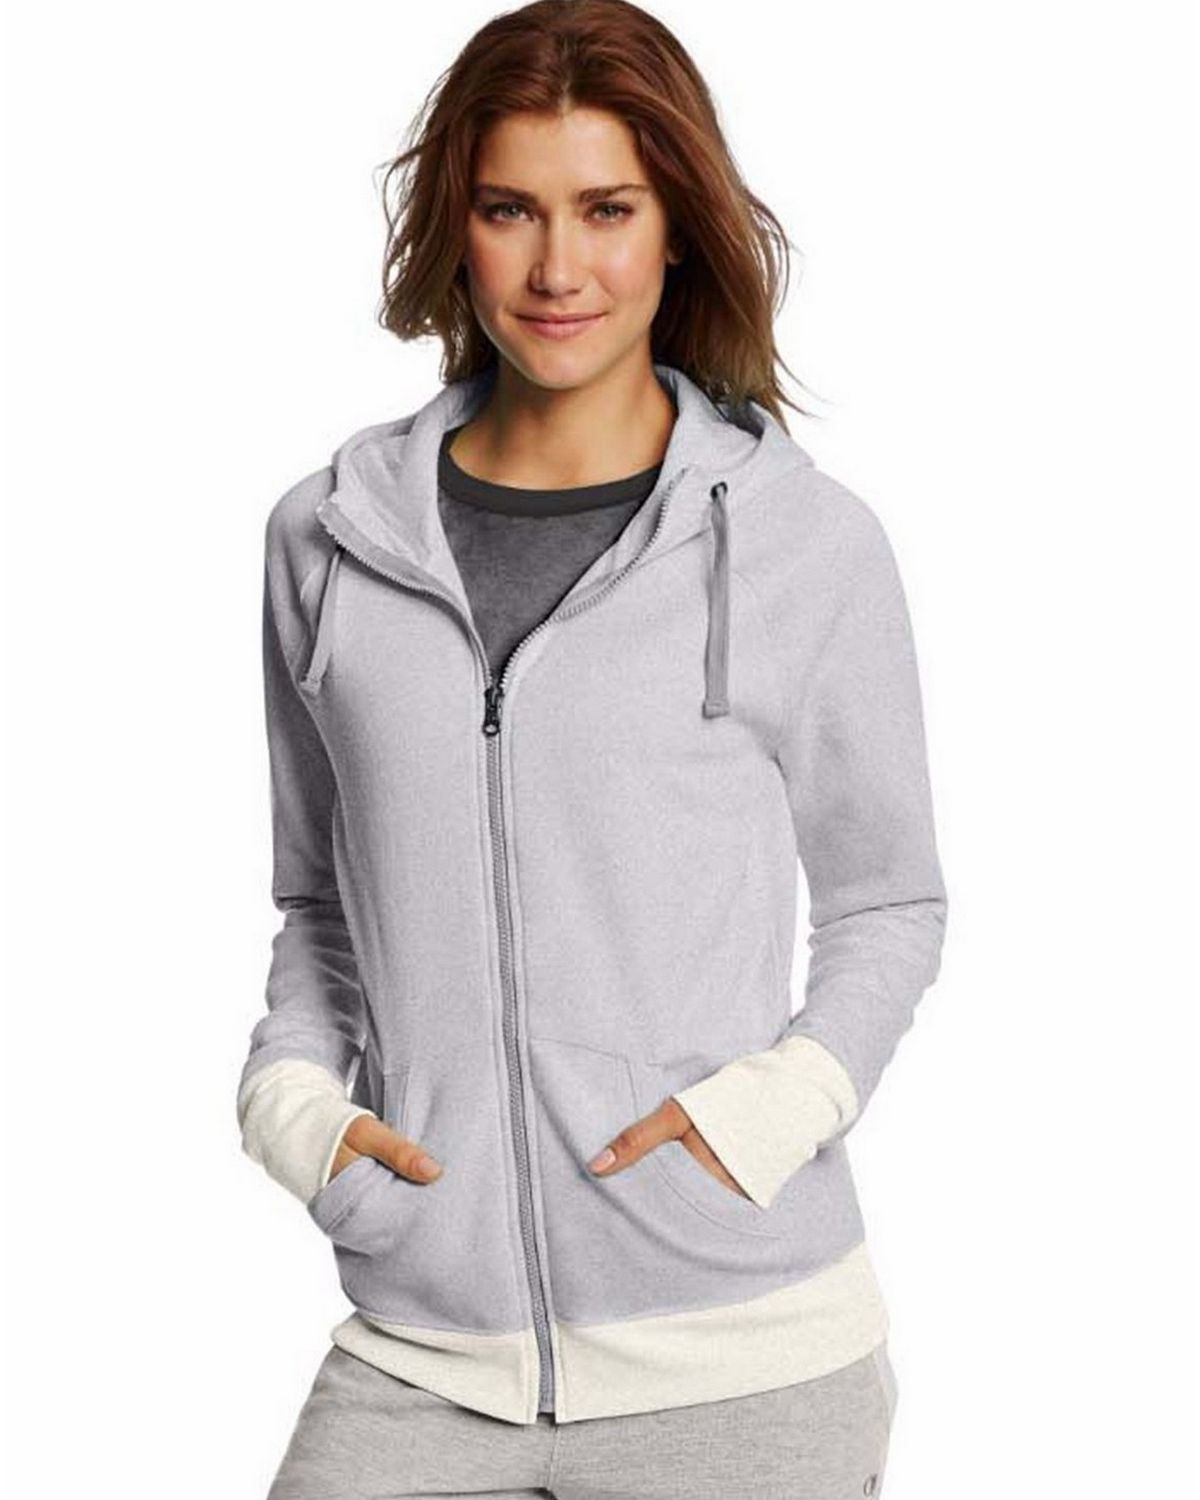 Champion W0933 Womens Fleece Full Zip Hoodie - Oxford Heather/Oatmeal Heather - XL W0933